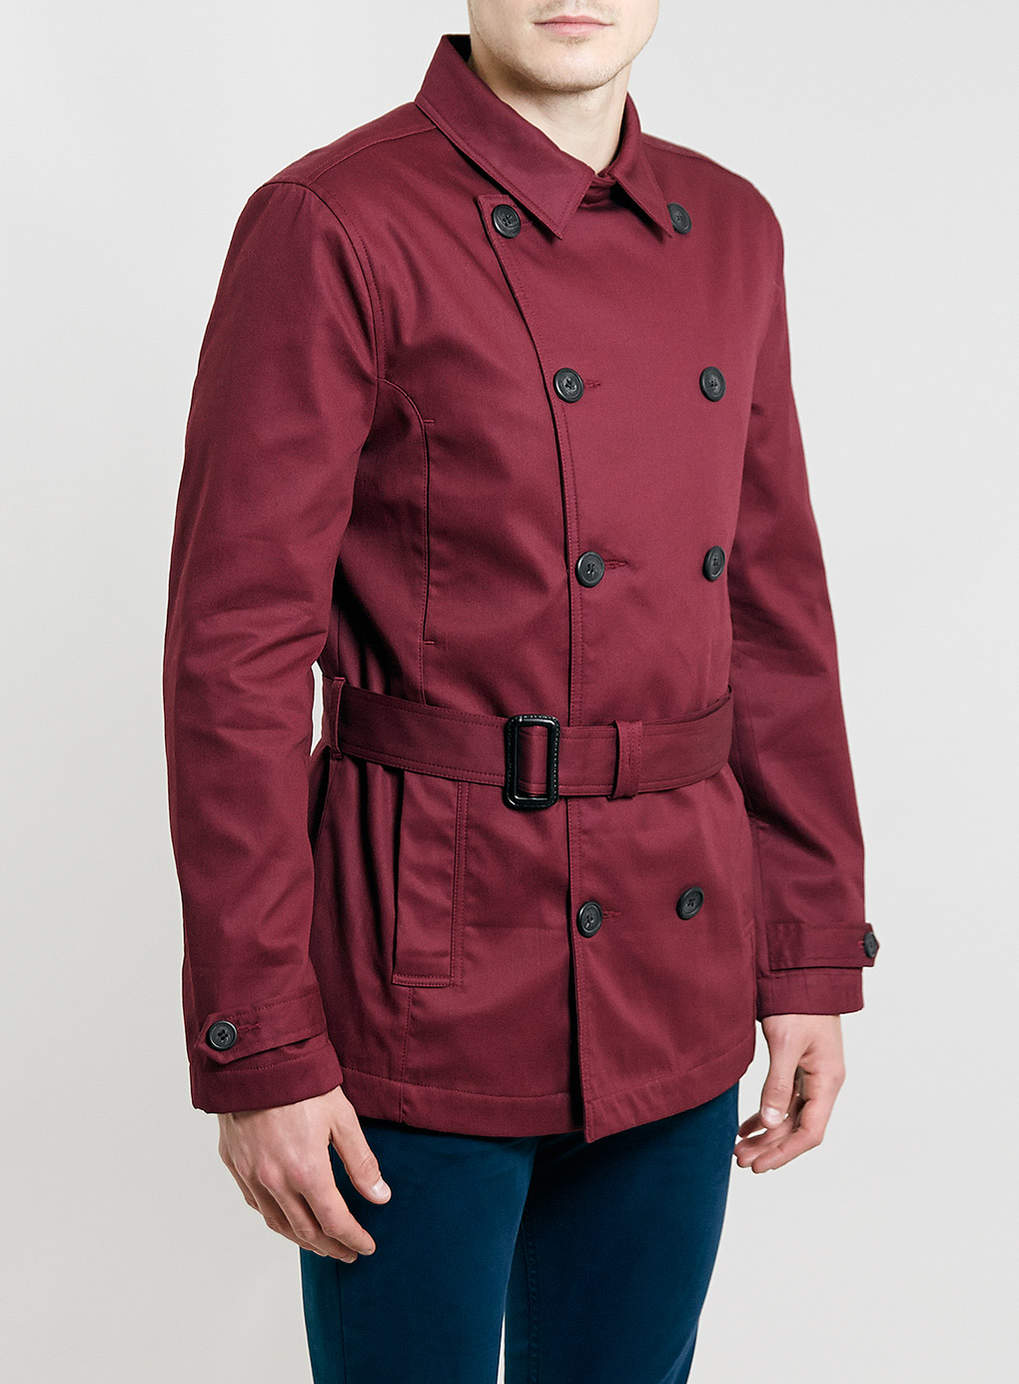 Burgundy Cropped Trench Coat, $140 at  Topman